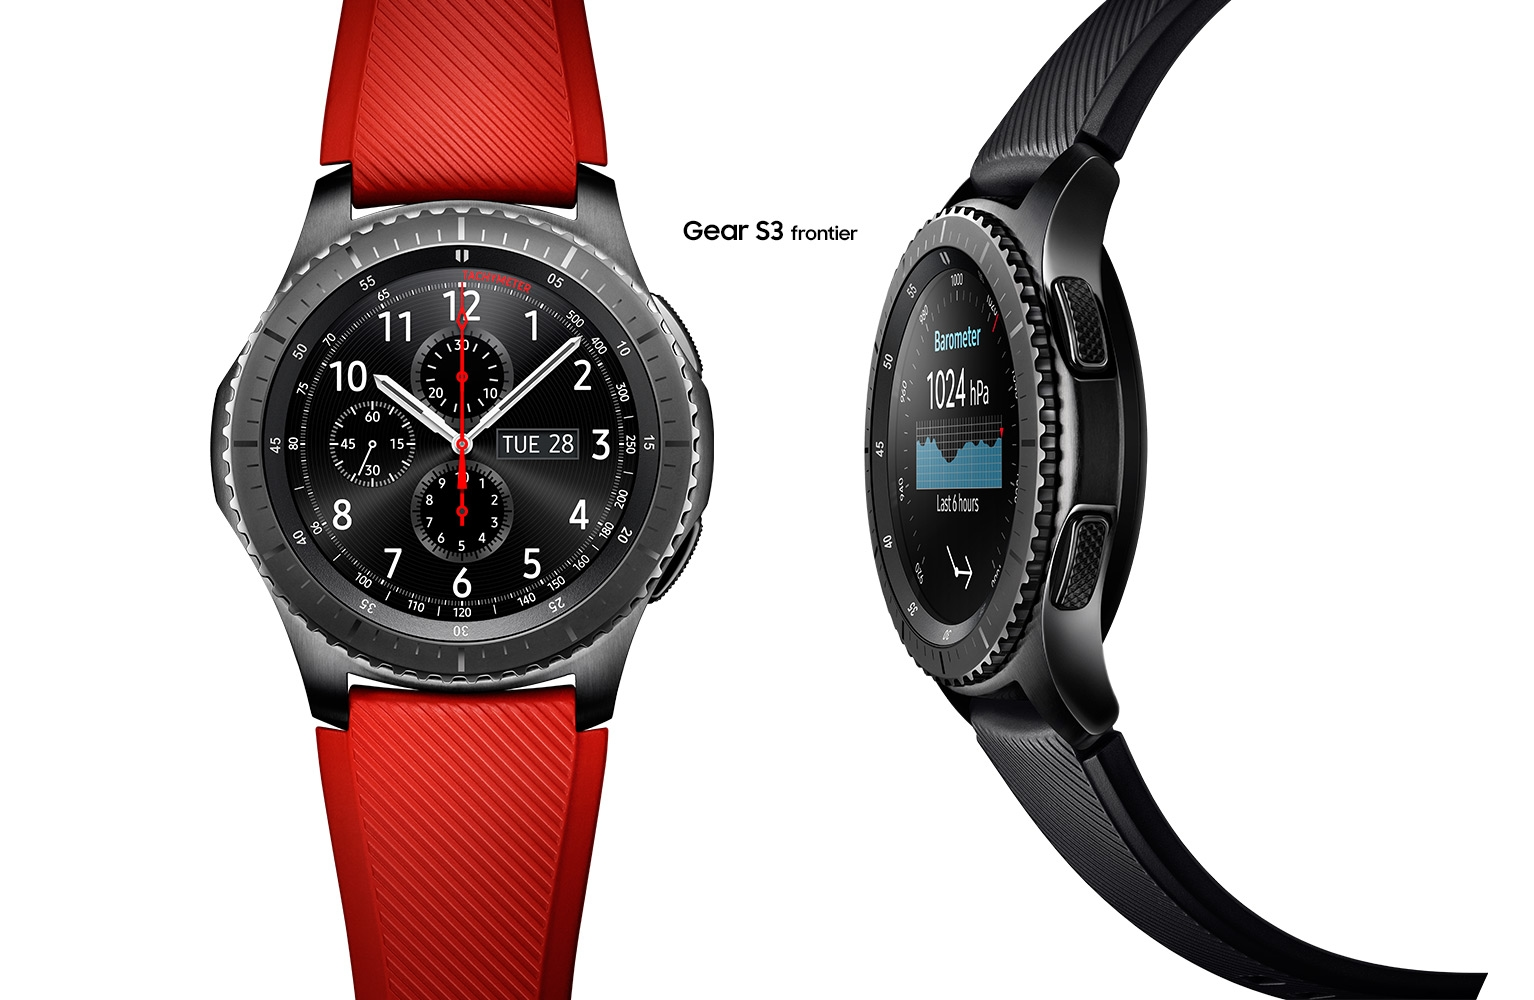 4c53ce43a62 One Gear S3 Frontier with red watch band and one Gear S3 Frontier with black  watch